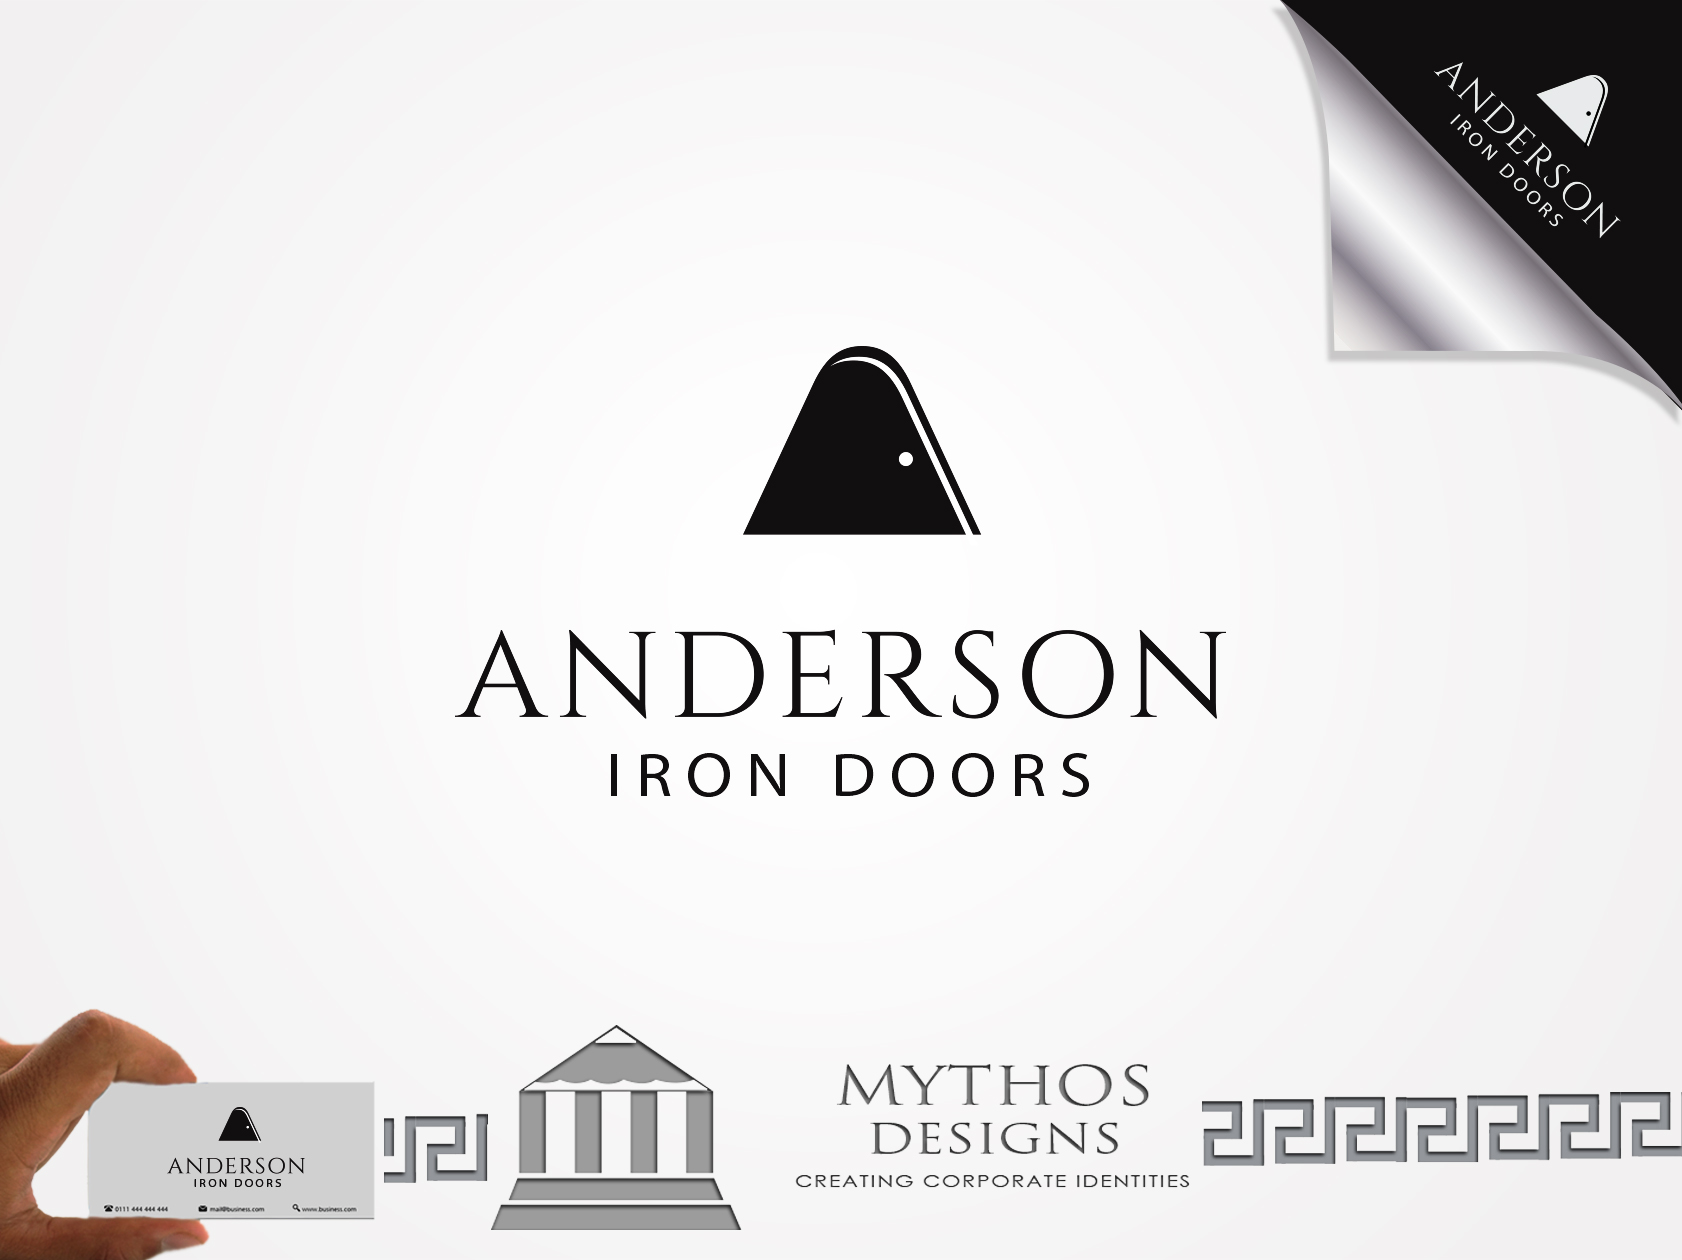 Logo Design by Mythos Designs - Entry No. 45 in the Logo Design Contest Artistic Logo Design for Anderson Iron Doors.